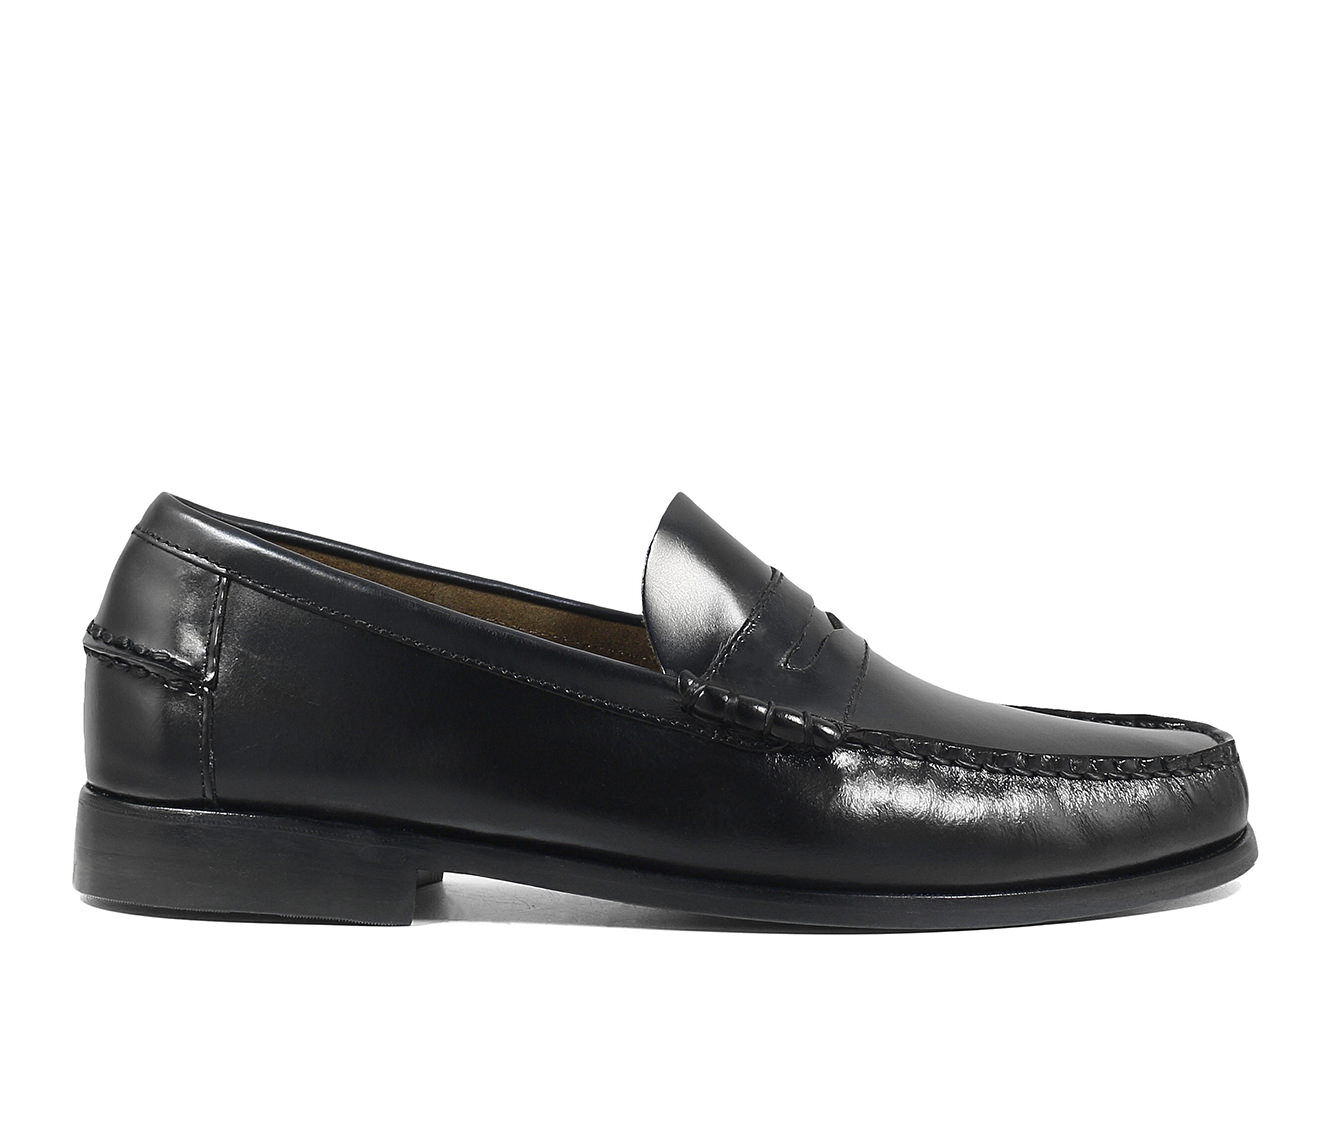 Men's Florsheim Berkley Penny Loafer Dress Shoes Black